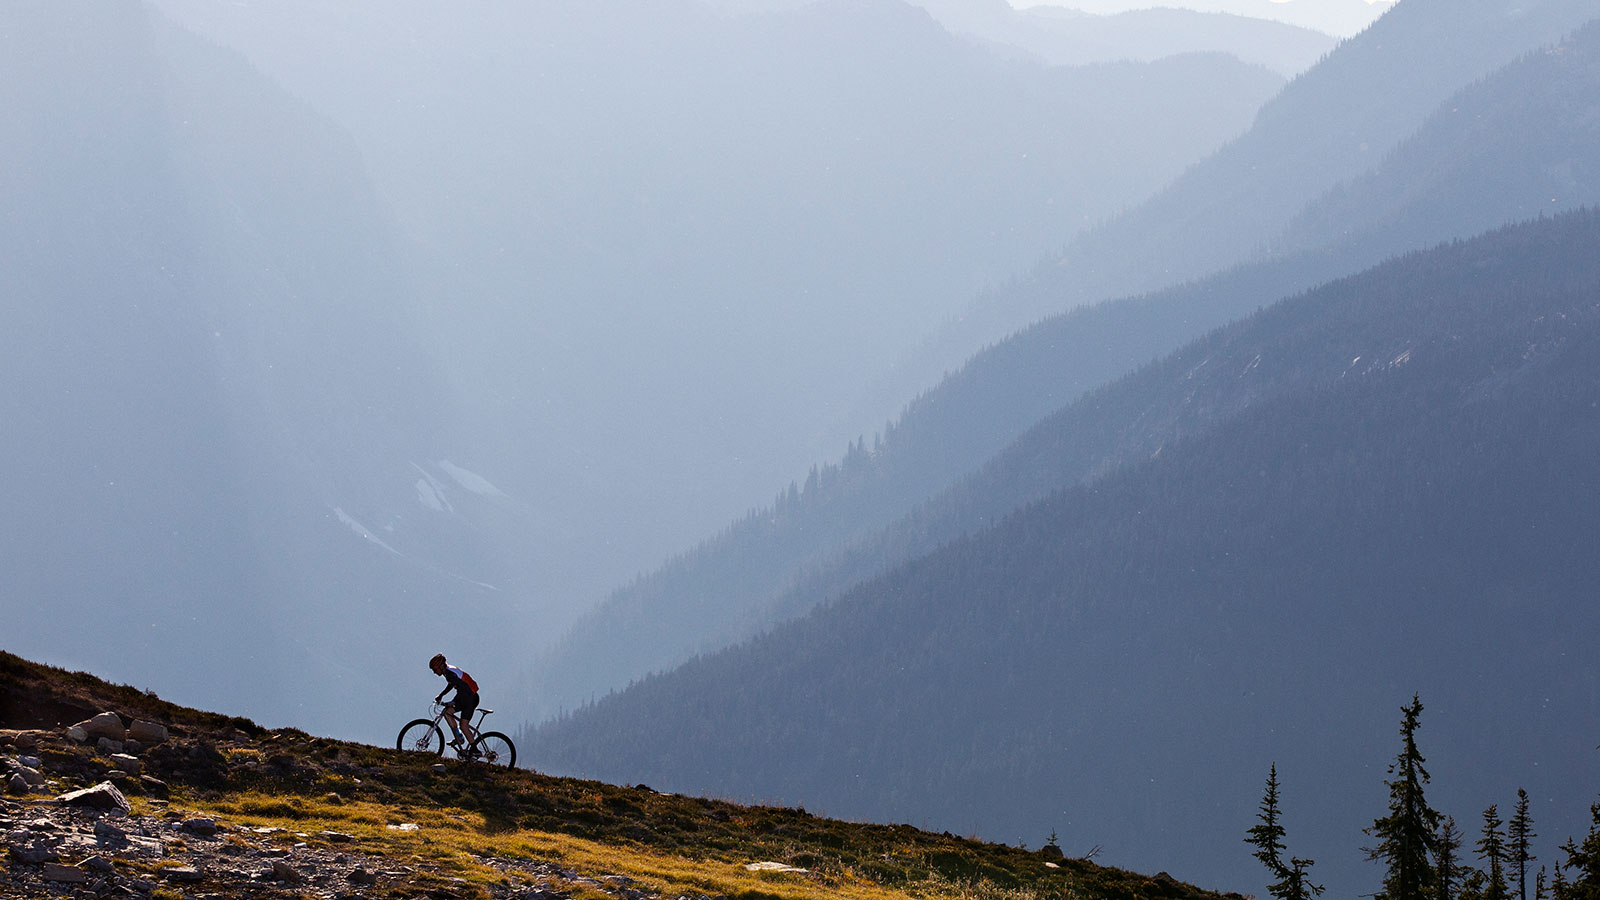 Cyclist heading up a hill in a mountain range